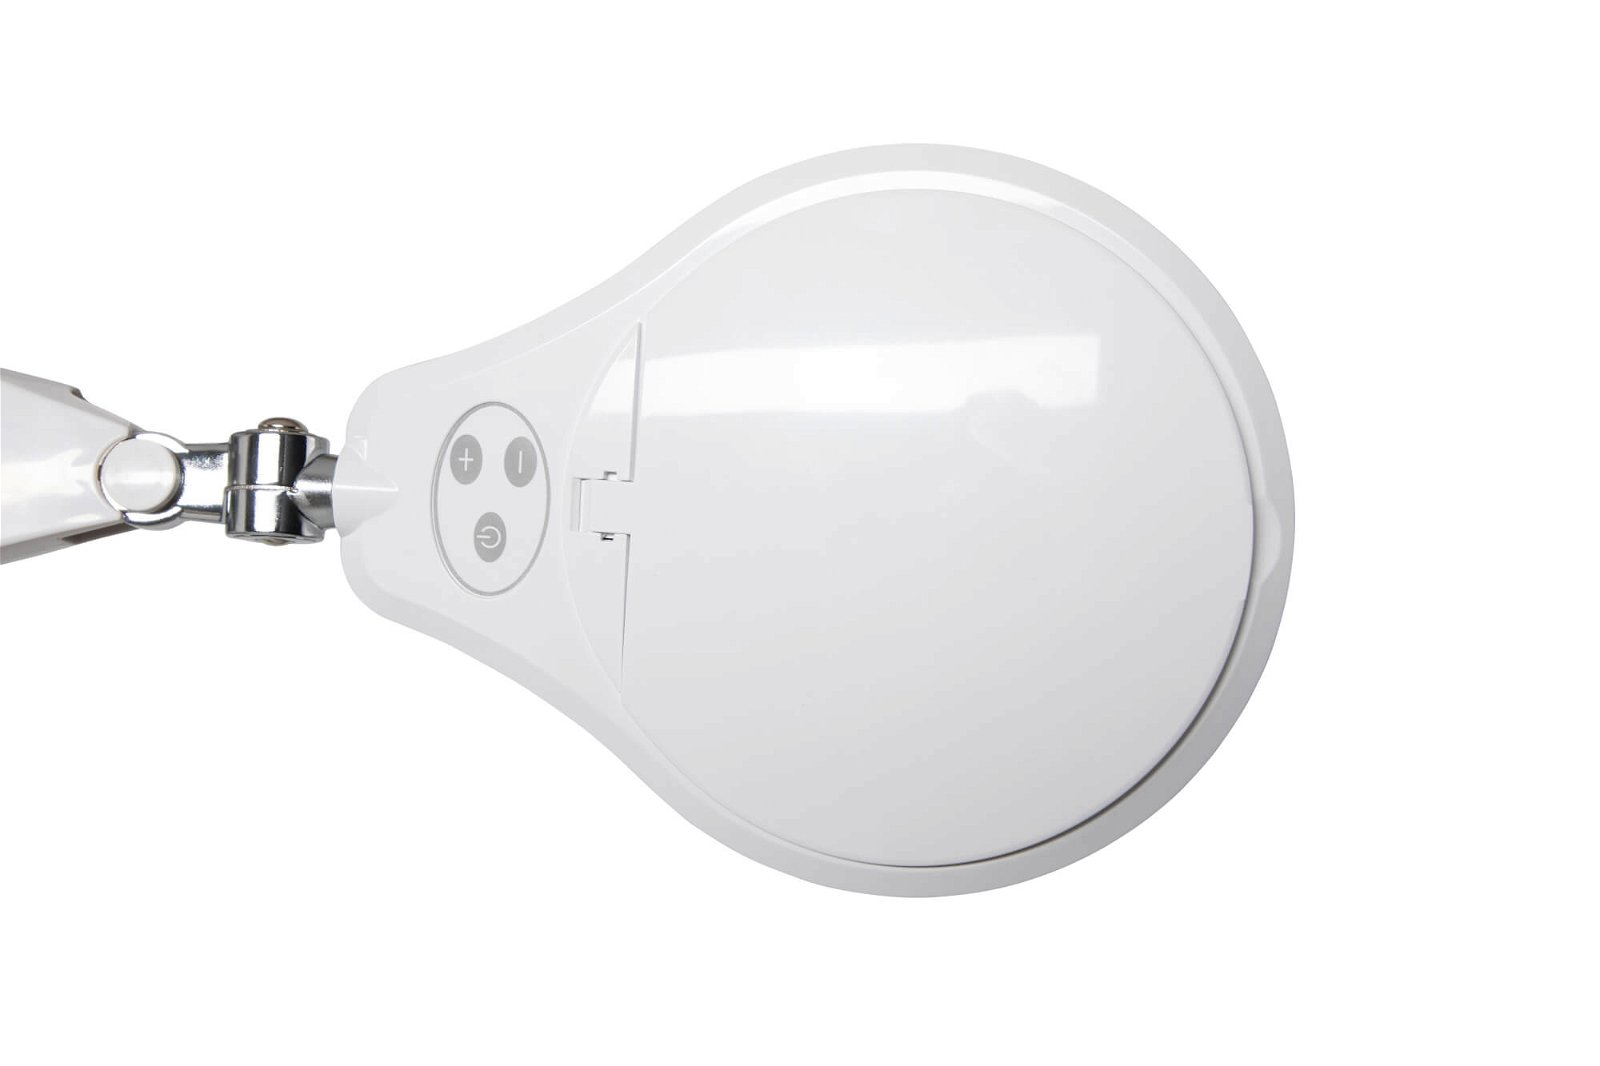 LED-Lupenleuchte MAULsource, dimmbar